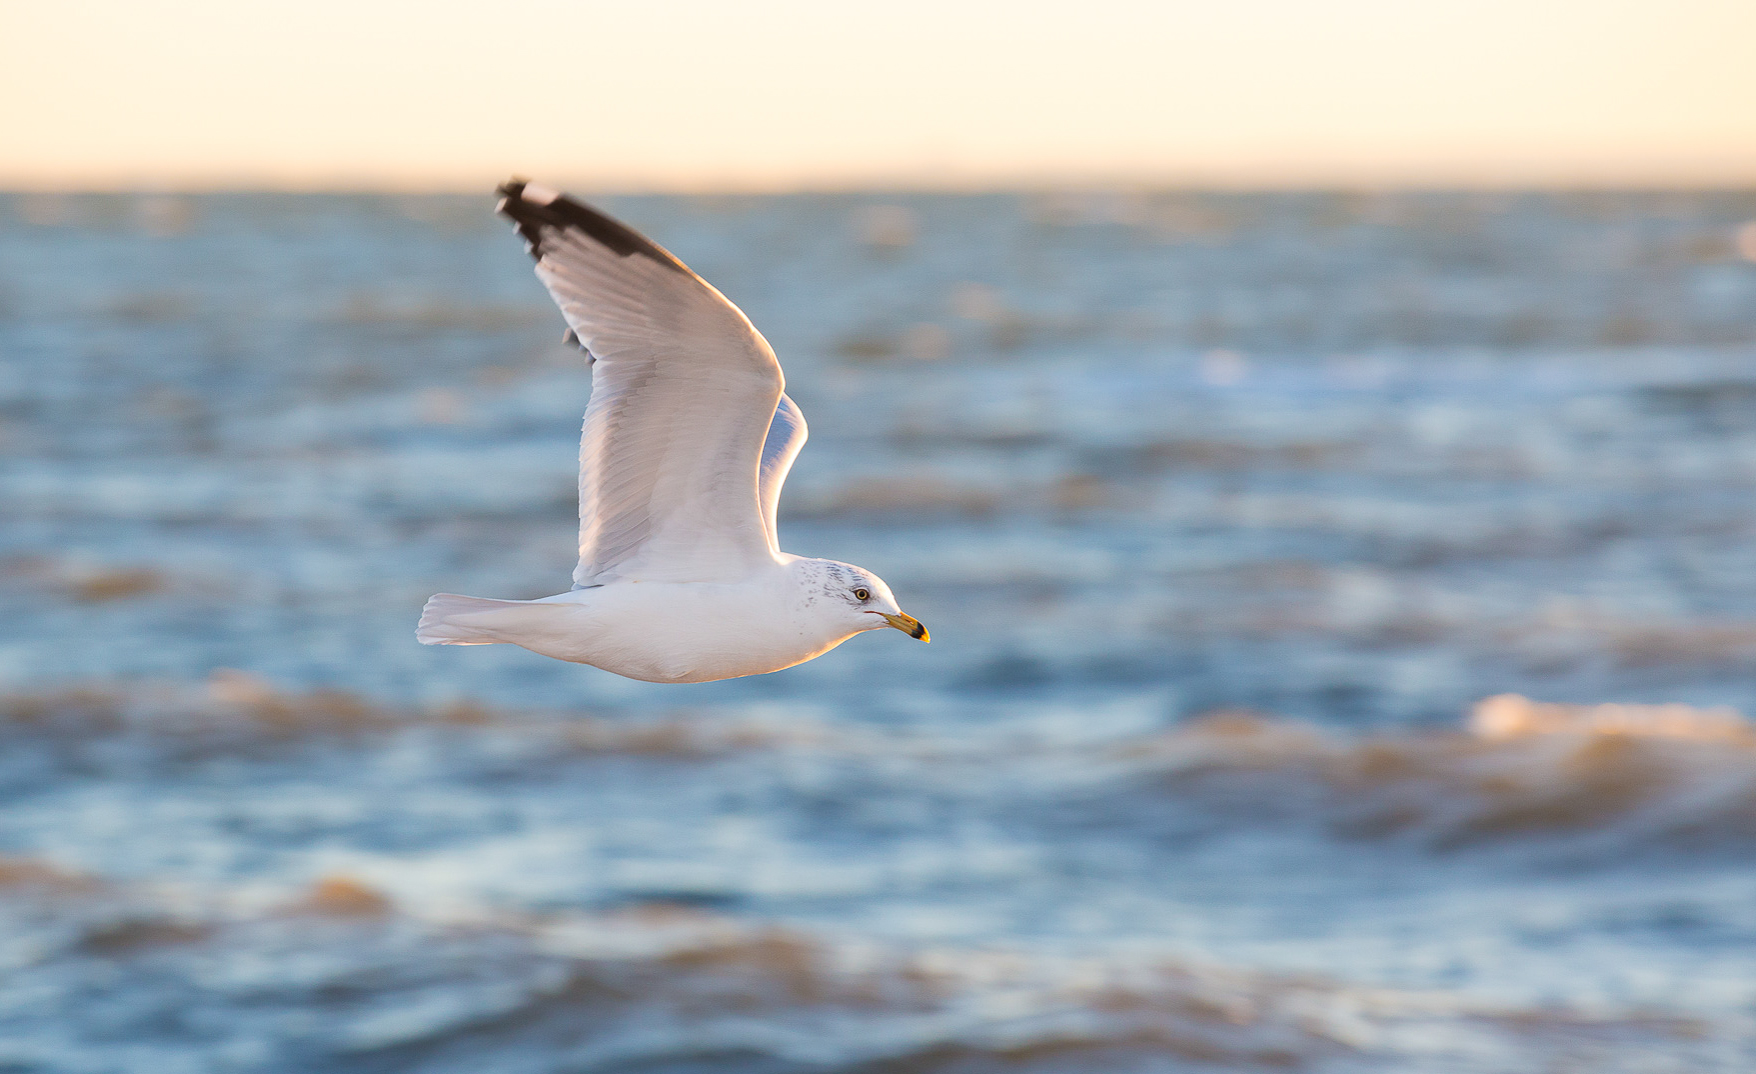 Nancy Moon's Photography of Seagulls in Connecticut